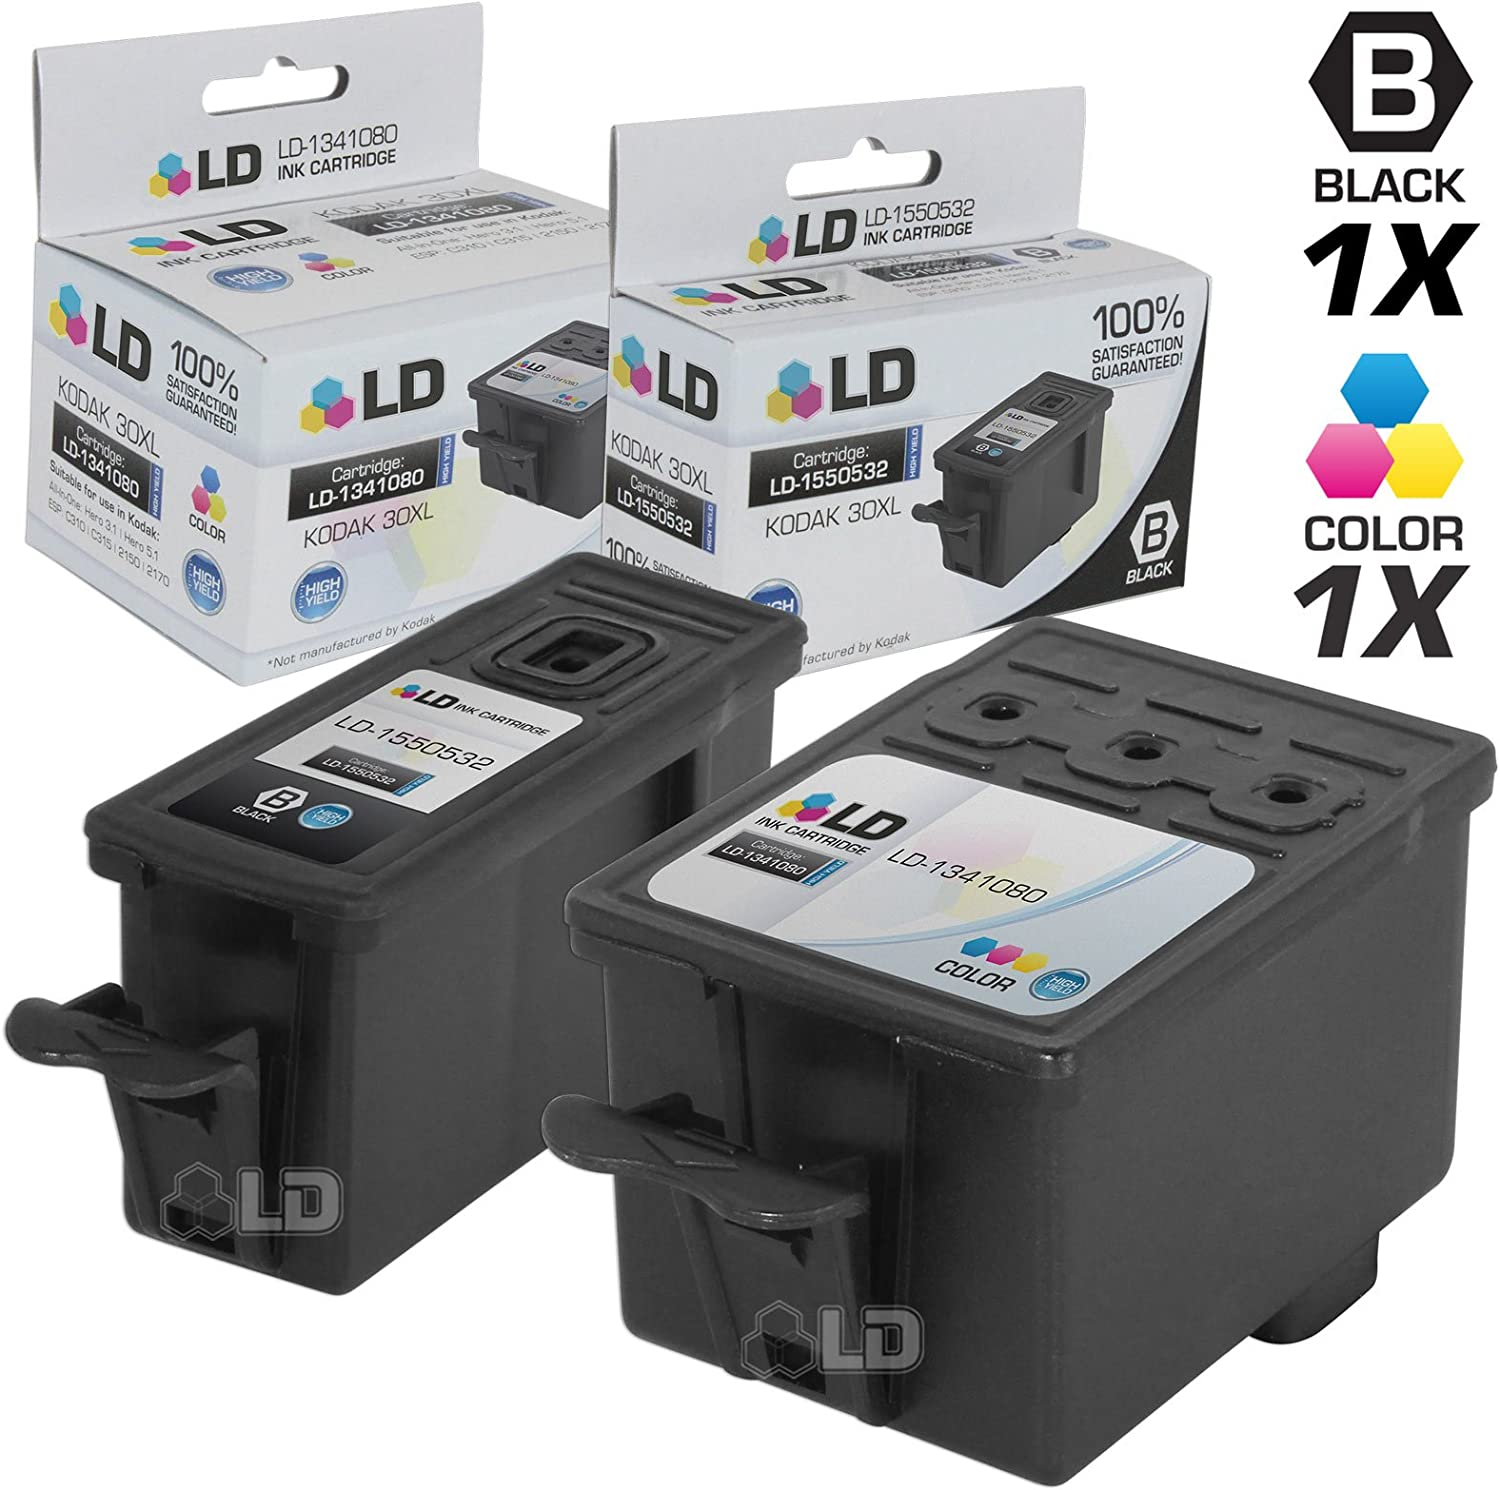 LD Compatible Ink Cartridge Replacement for Kodak 30XL High Yield (1 Black, 1 Color, 2-Pack)